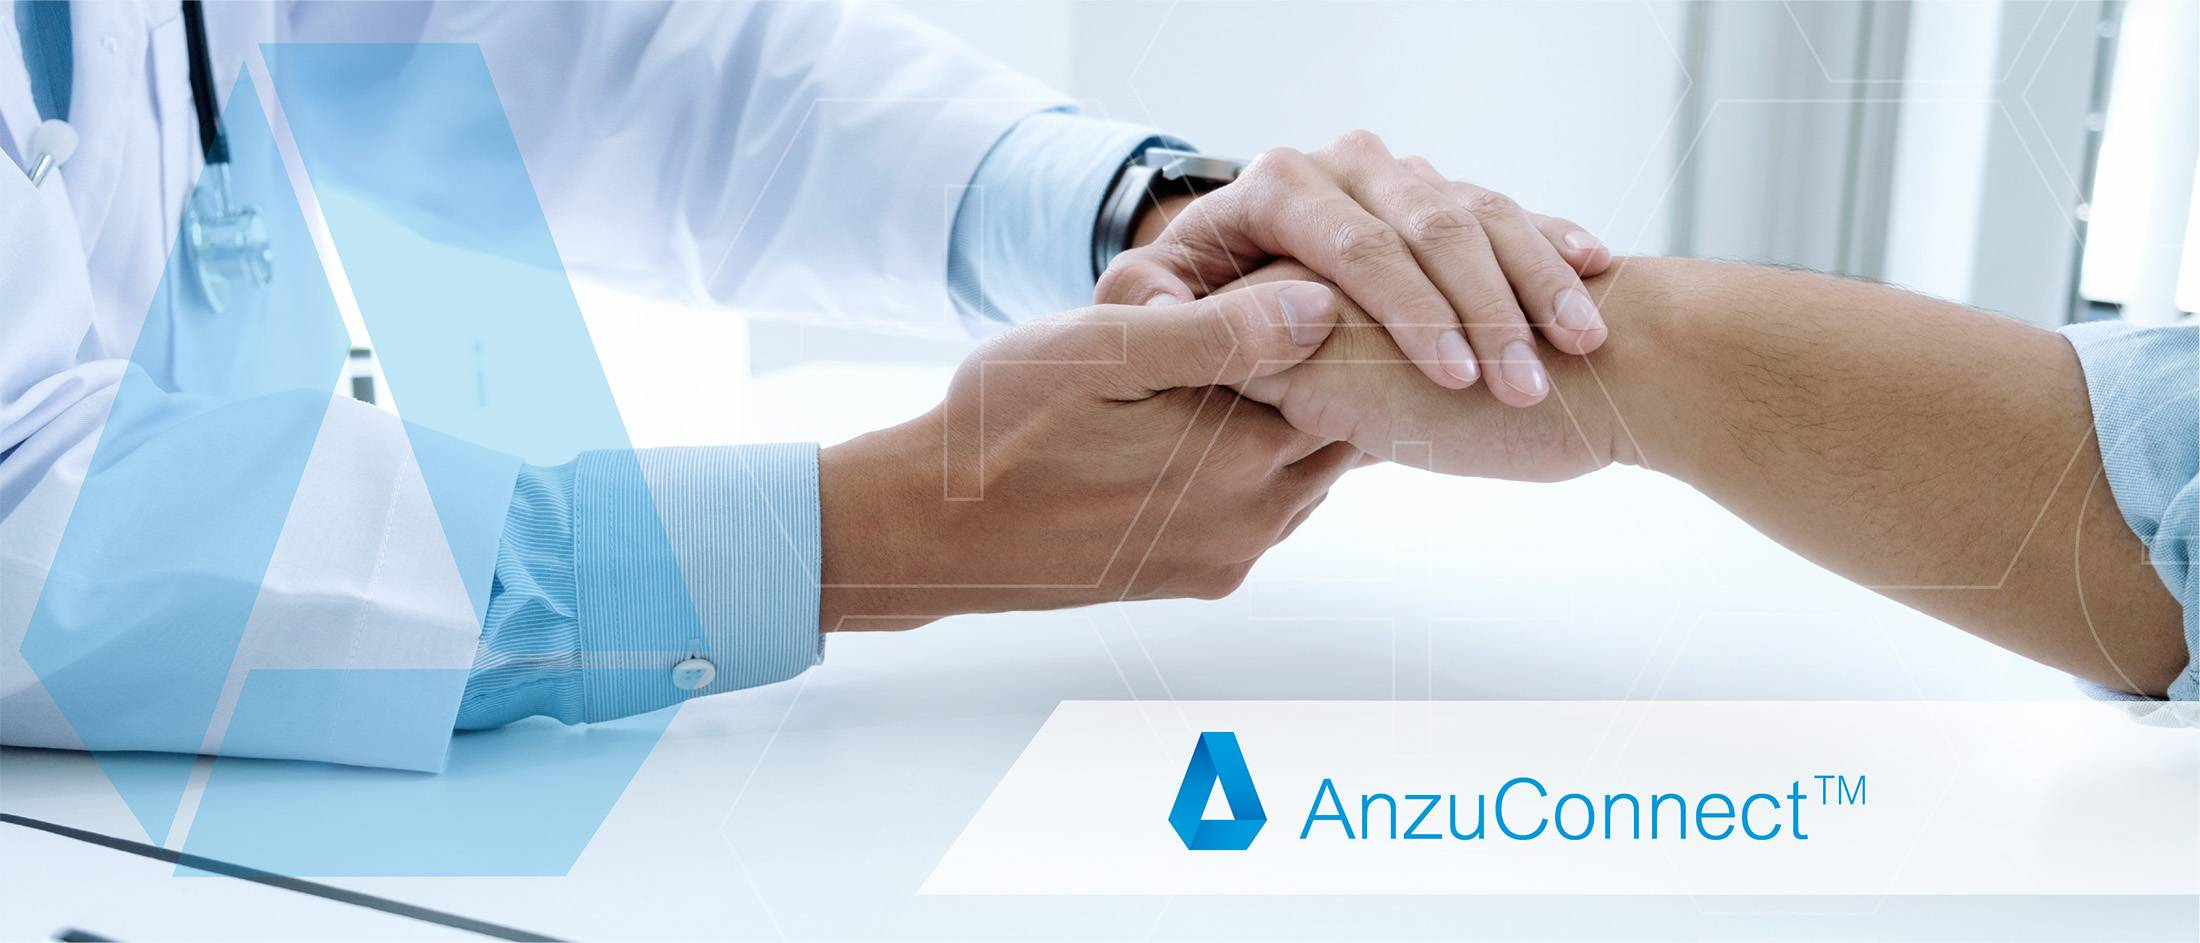 Anzu Connect - Our Work